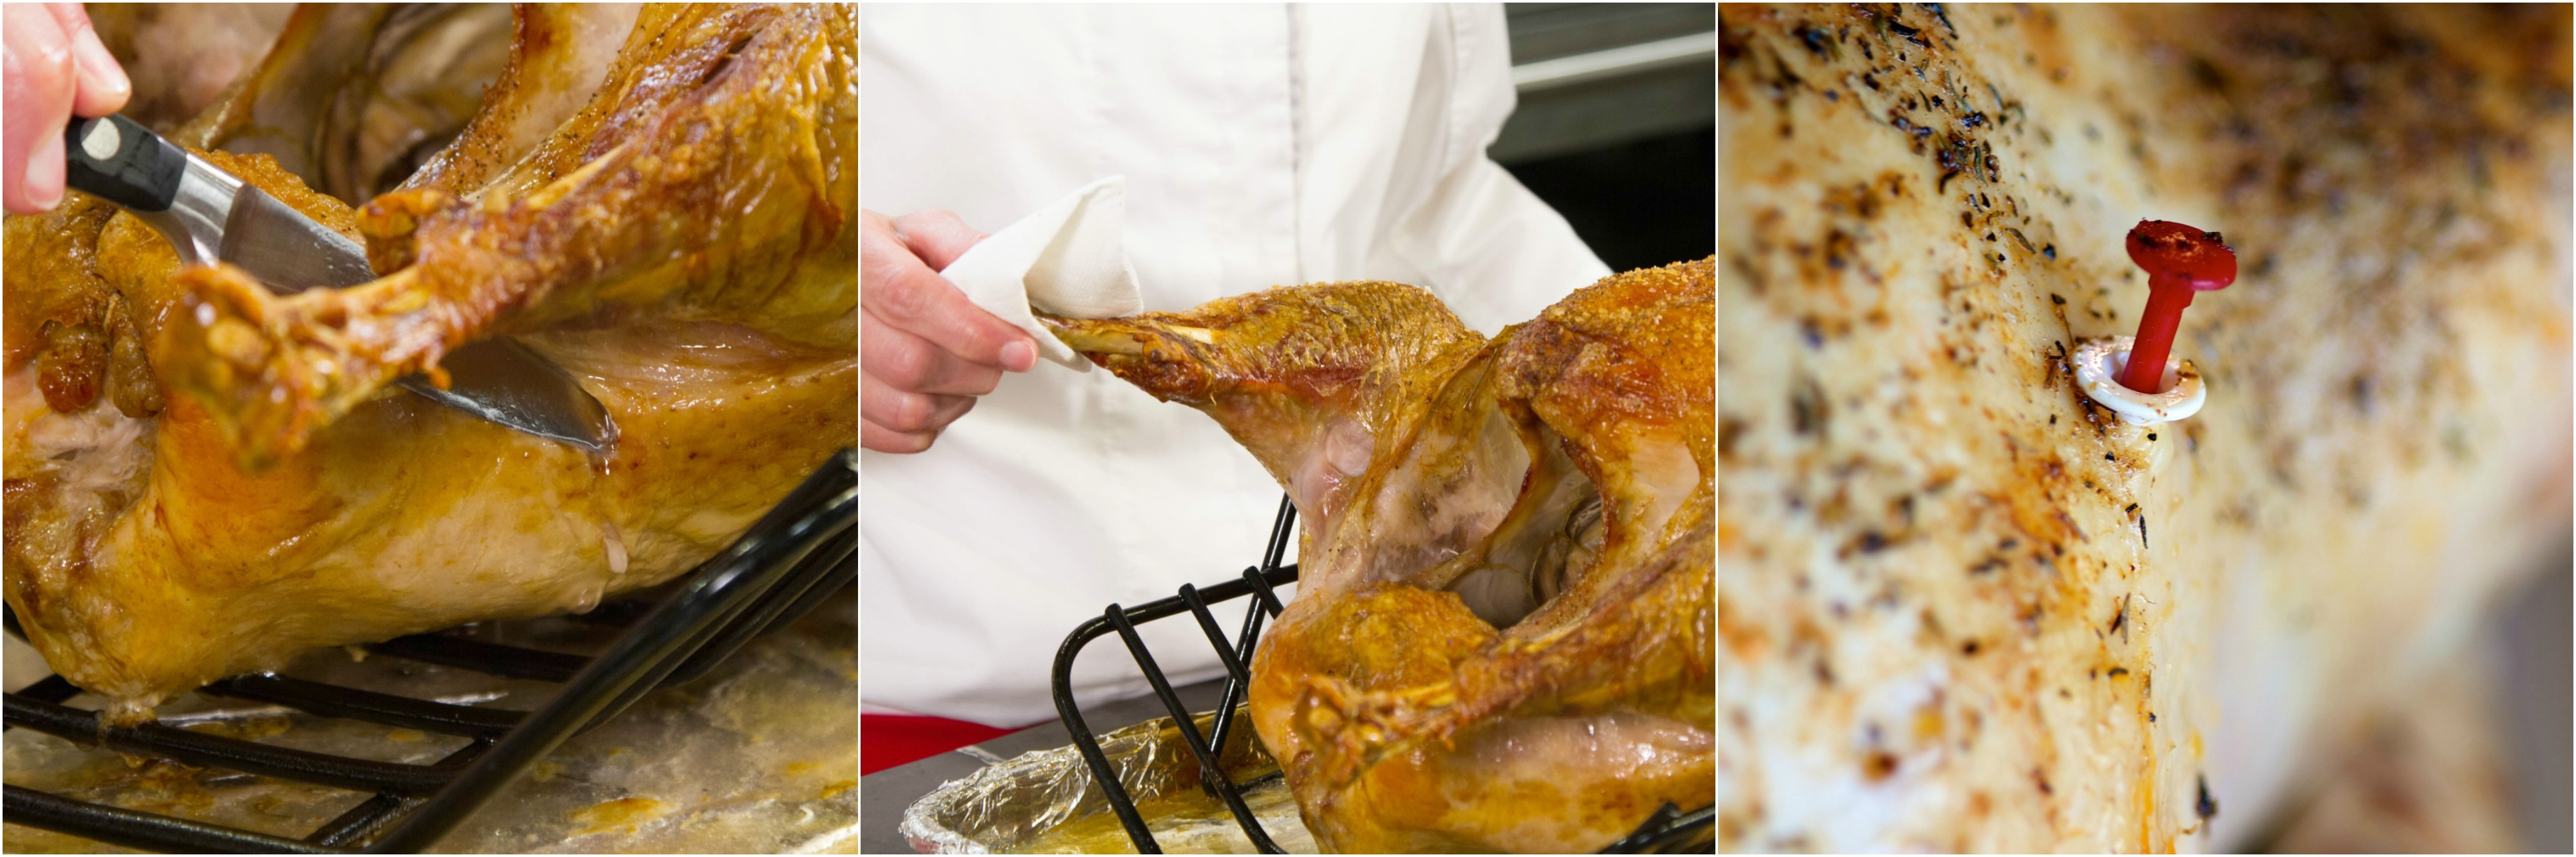 Don't check your turkey's doneness by wiggling a leg or by cutting it. Use a thermometer.